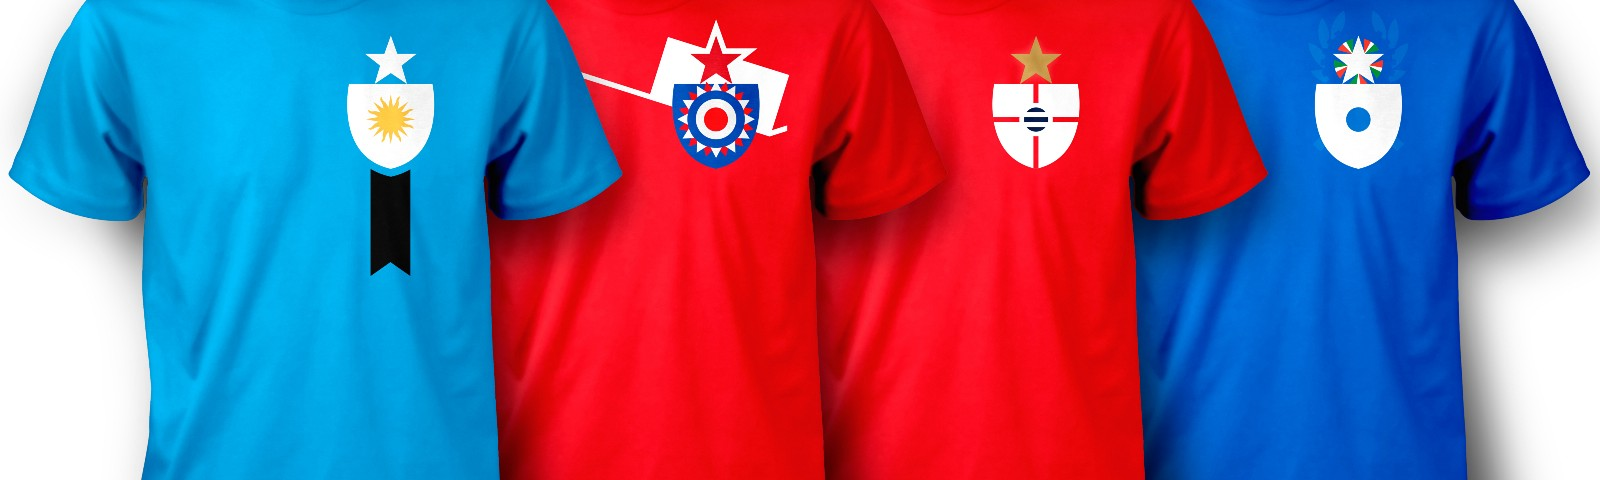 Designing a Shirt for Every World Cup Team. – Clean Sheet Co. – Medium 53ff873c9